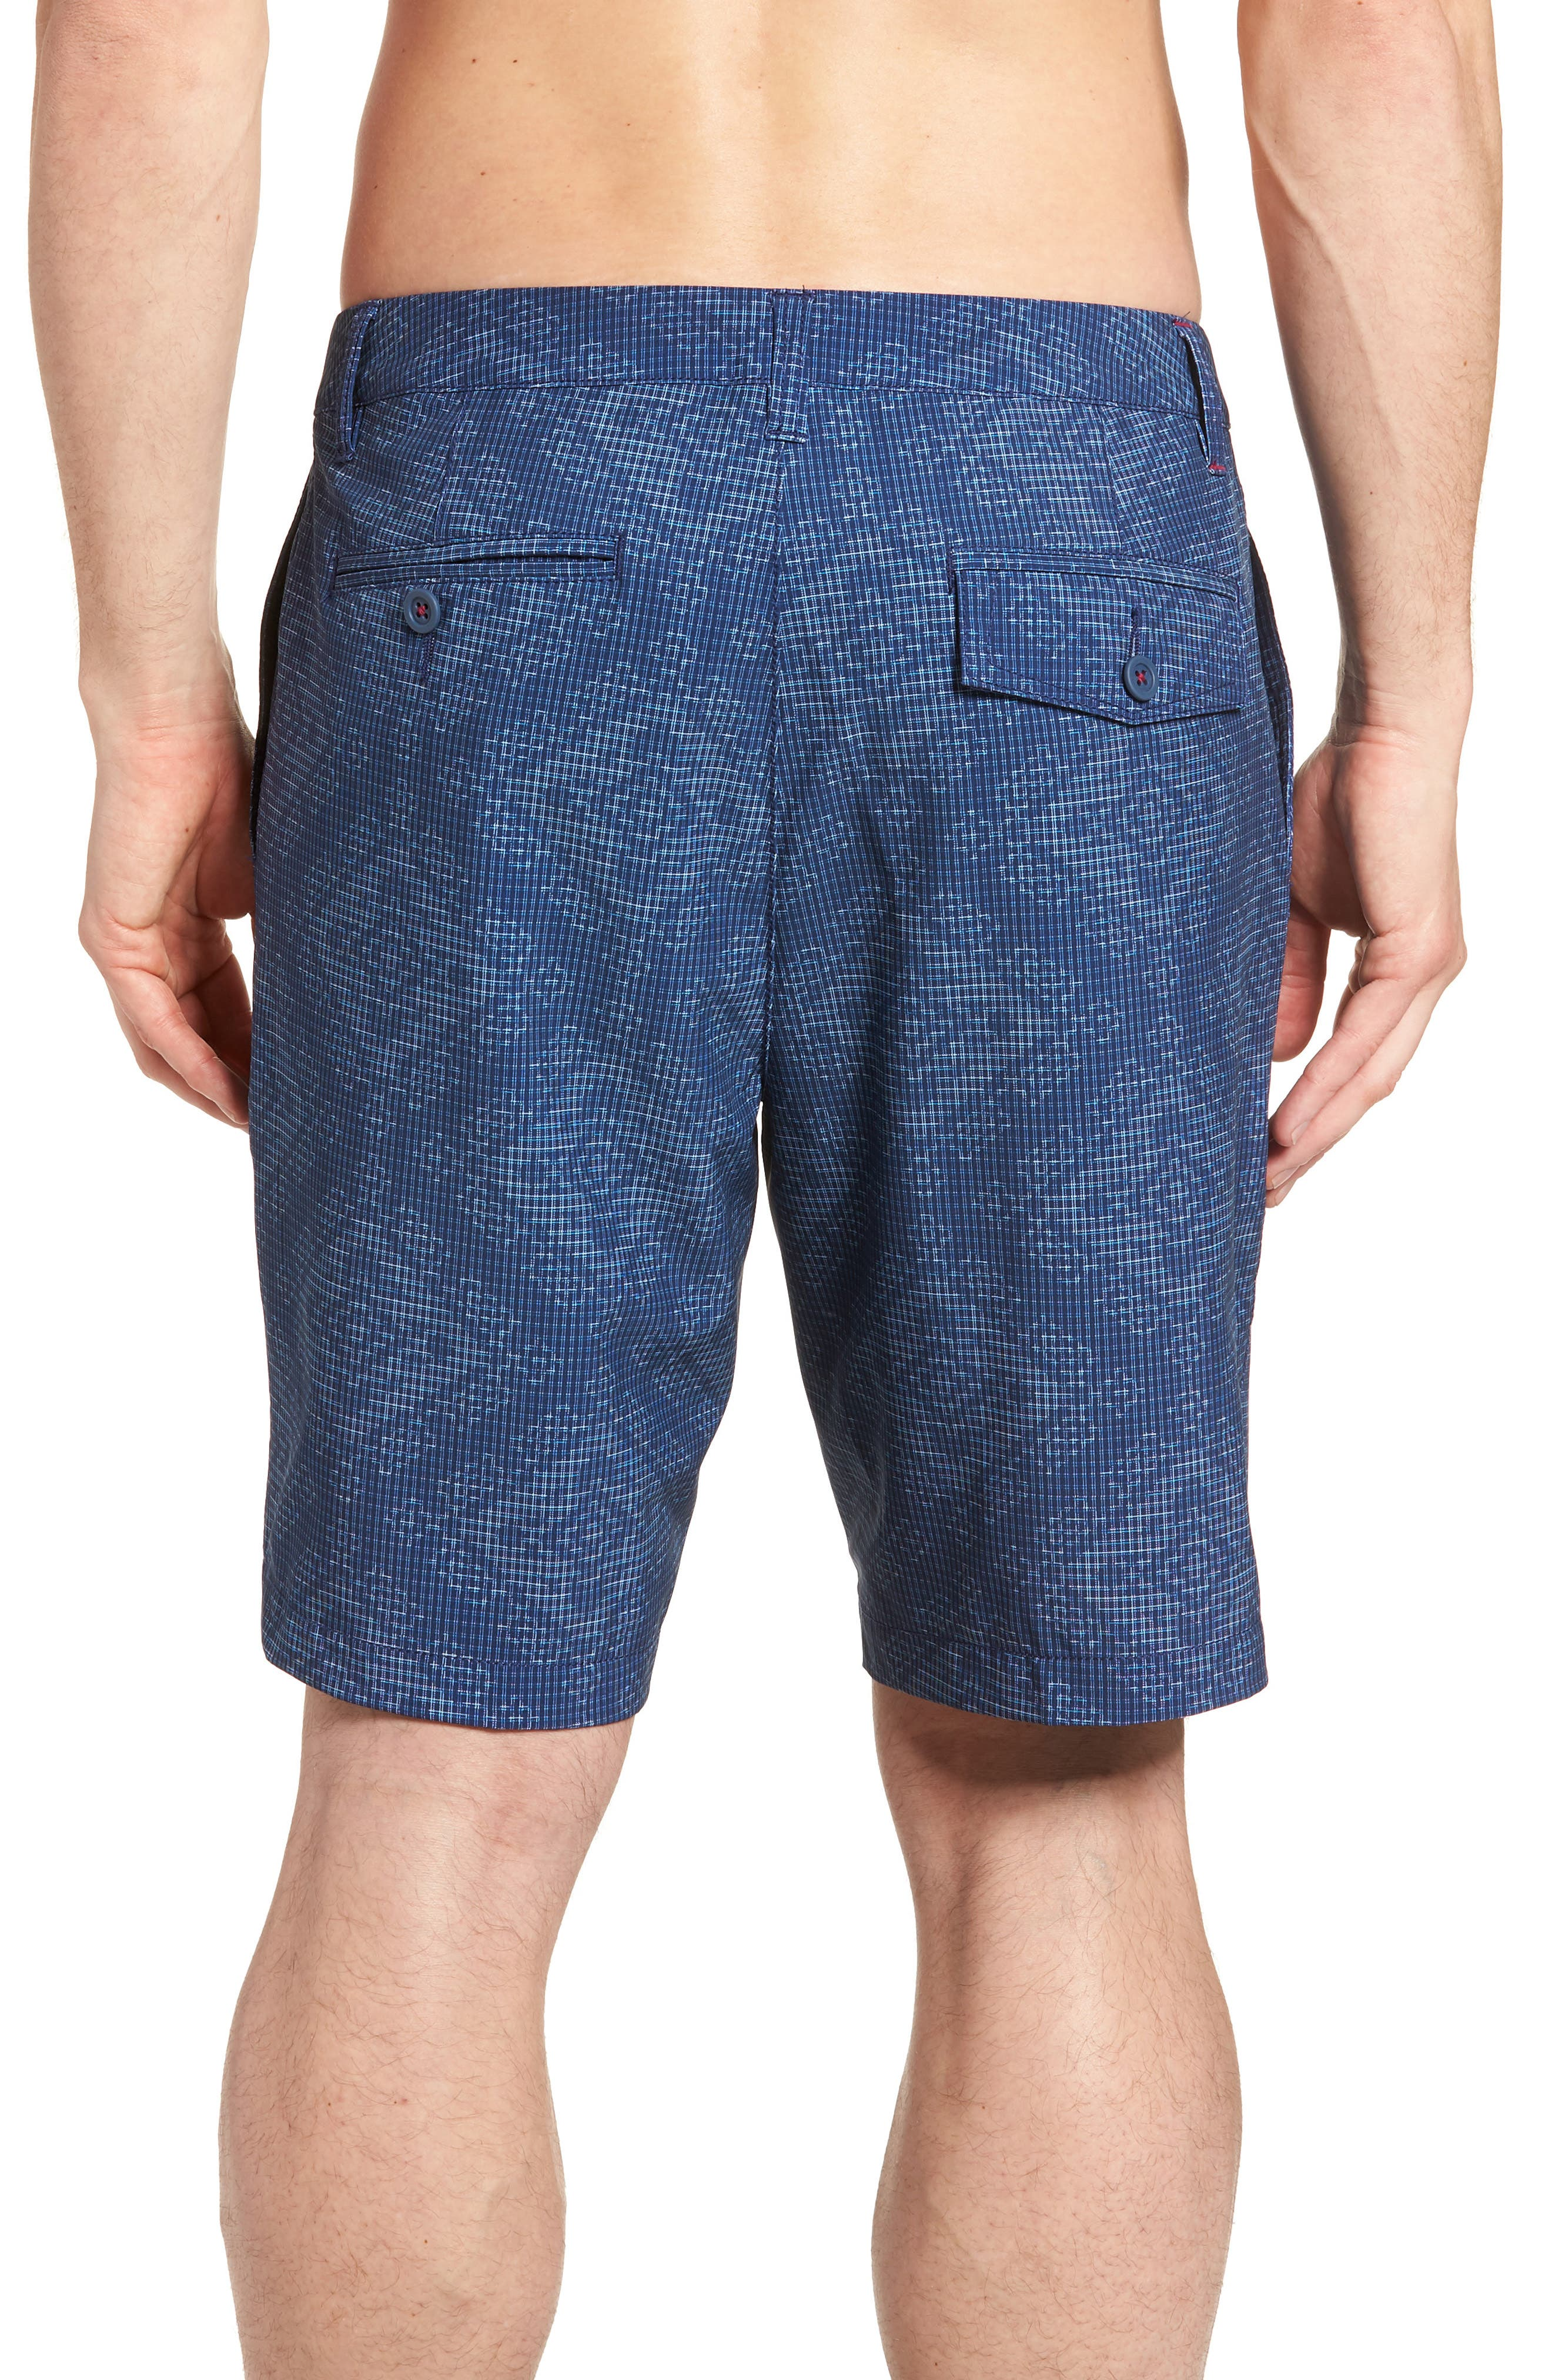 Bayman Geo De Mayo Hybrid Shorts,                             Alternate thumbnail 2, color,                             THRONE BLUE